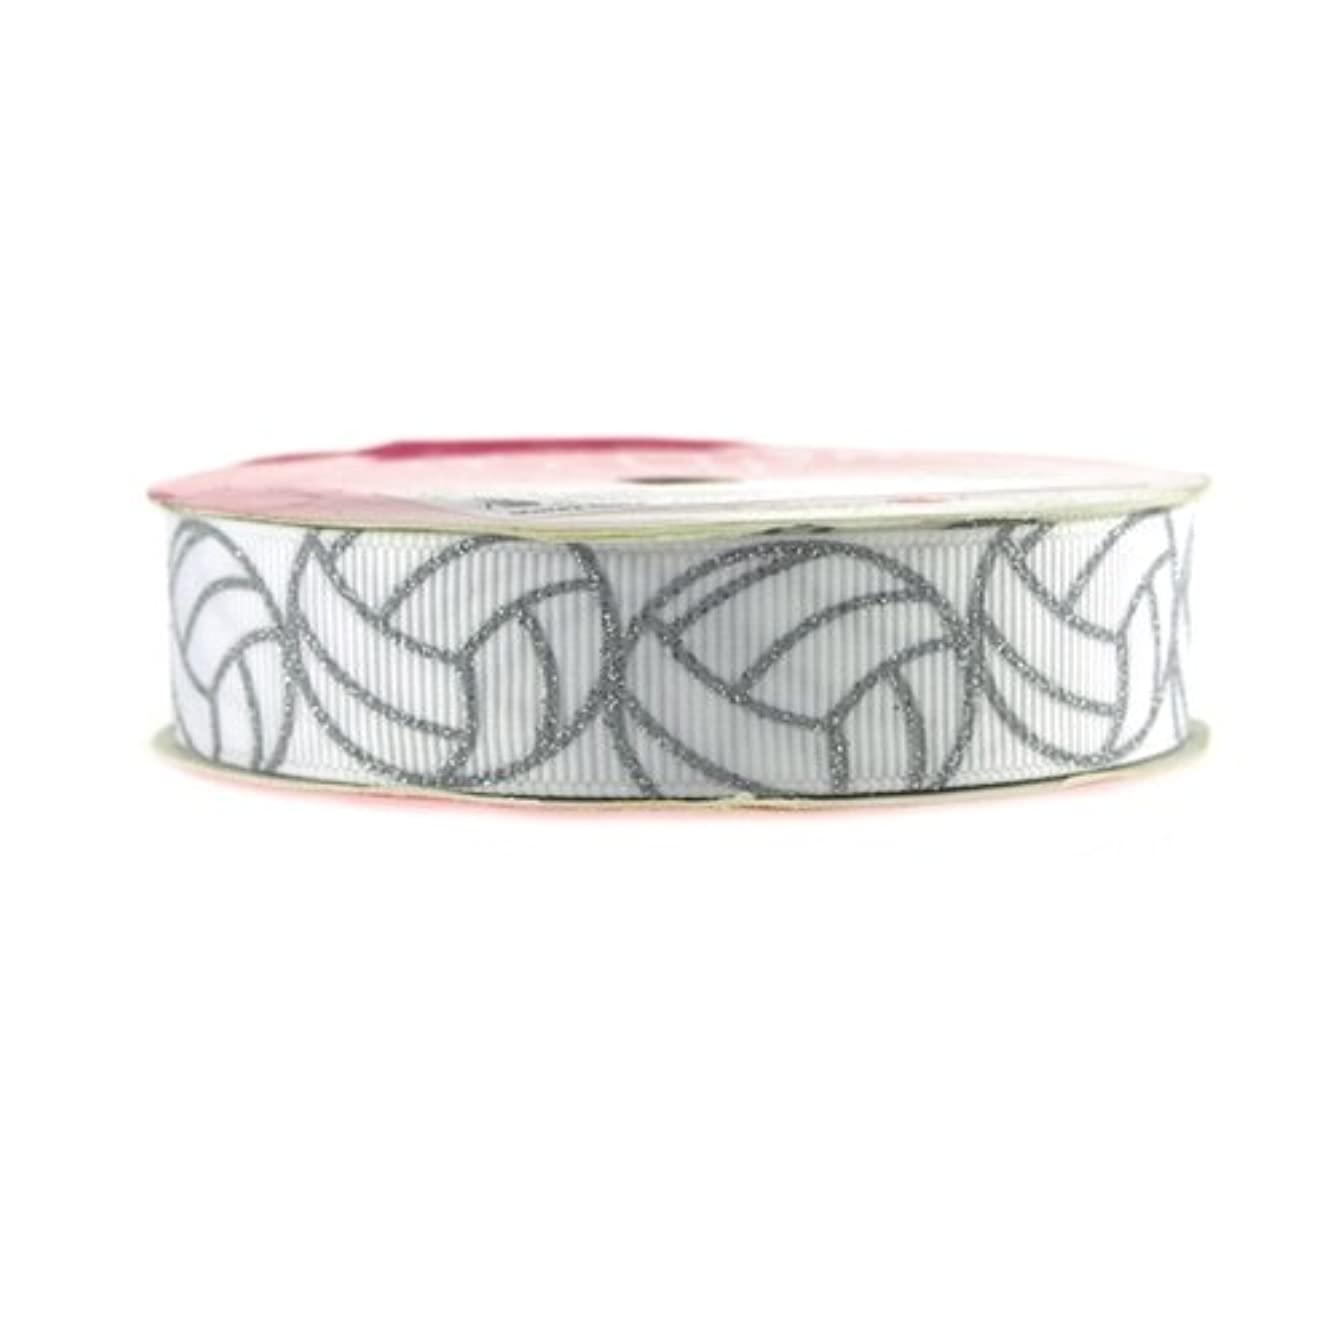 Homeford Firefly Imports Volleyball Print White Grosgrain Ribbon, 7/8-Inch, 4 Yards, 7/8